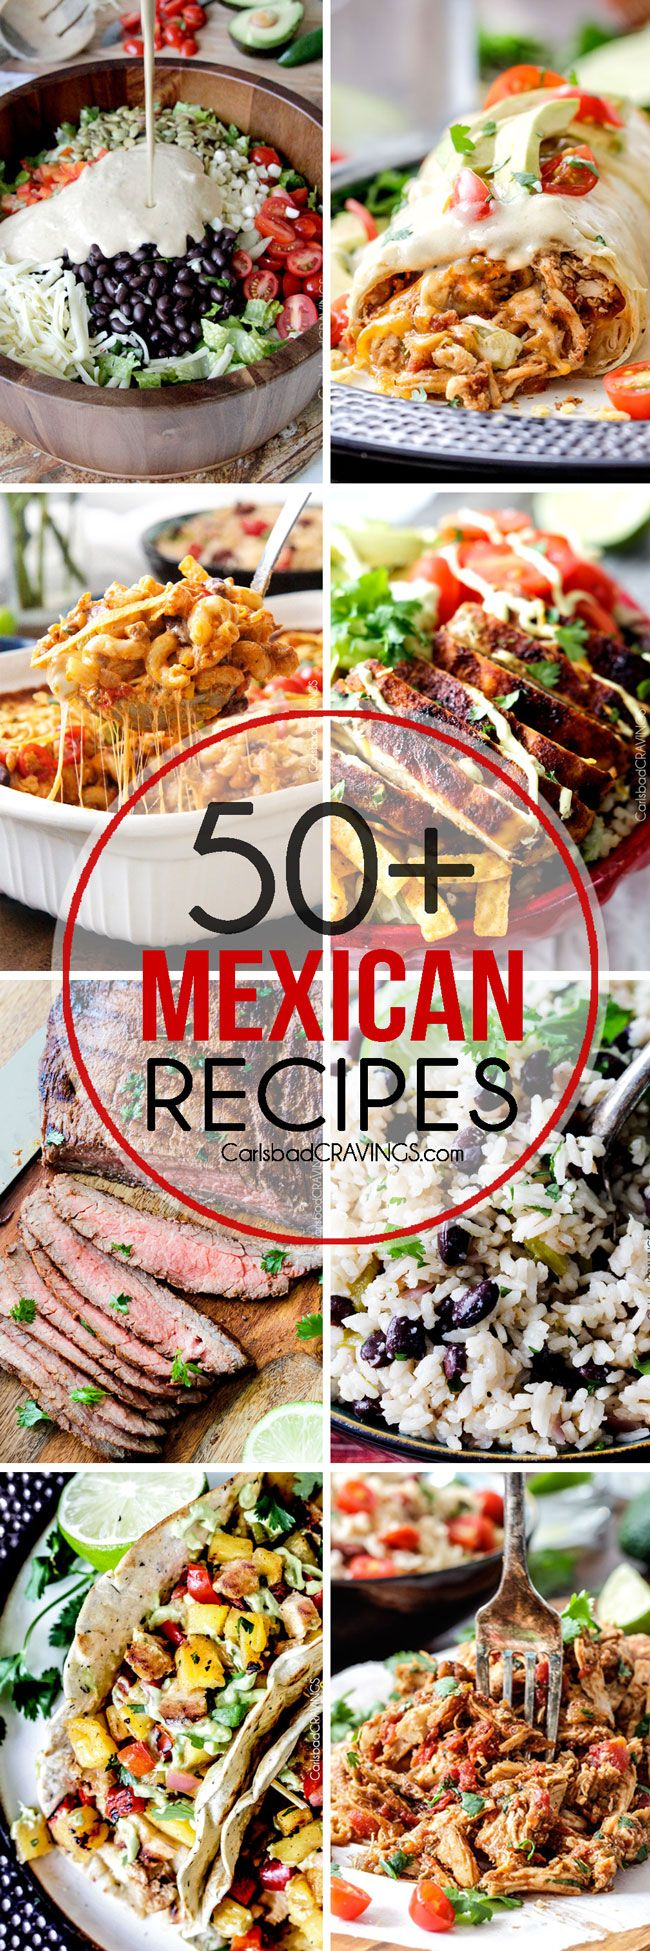 Over 50 Mexican Recipes